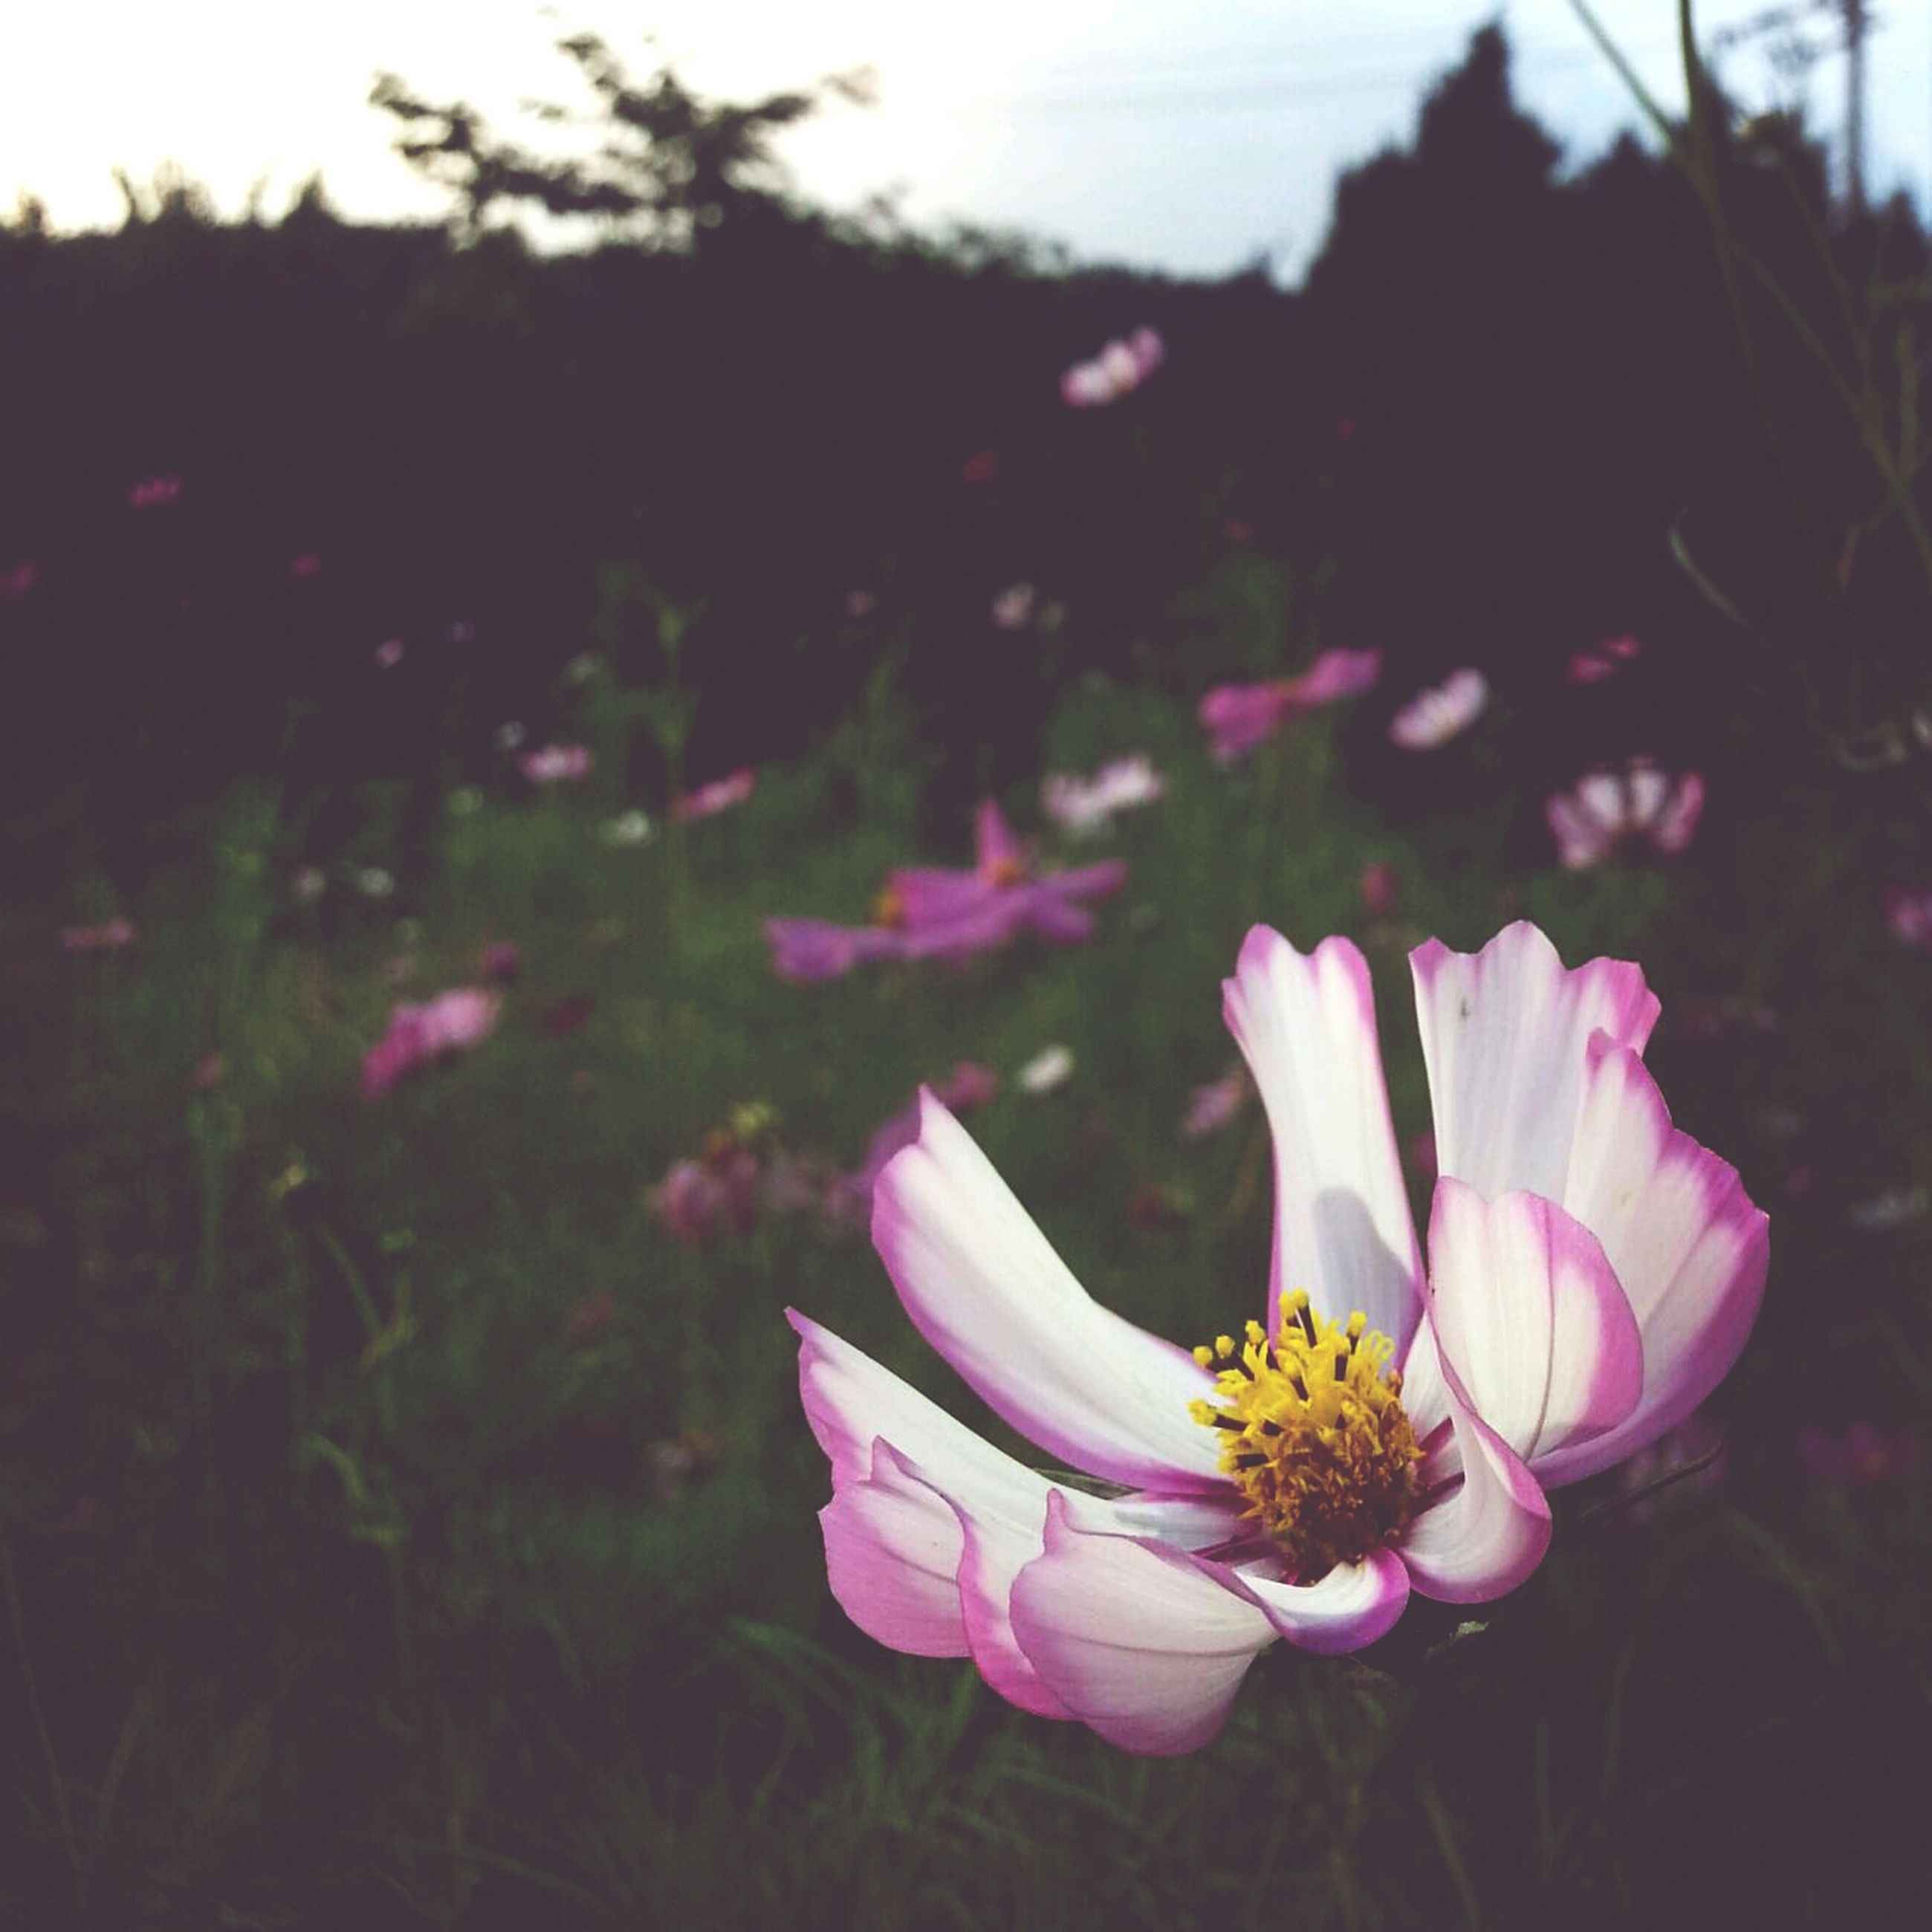 flower, petal, fragility, flower head, freshness, focus on foreground, beauty in nature, growth, close-up, pink color, blooming, nature, single flower, plant, field, pollen, stem, in bloom, selective focus, outdoors